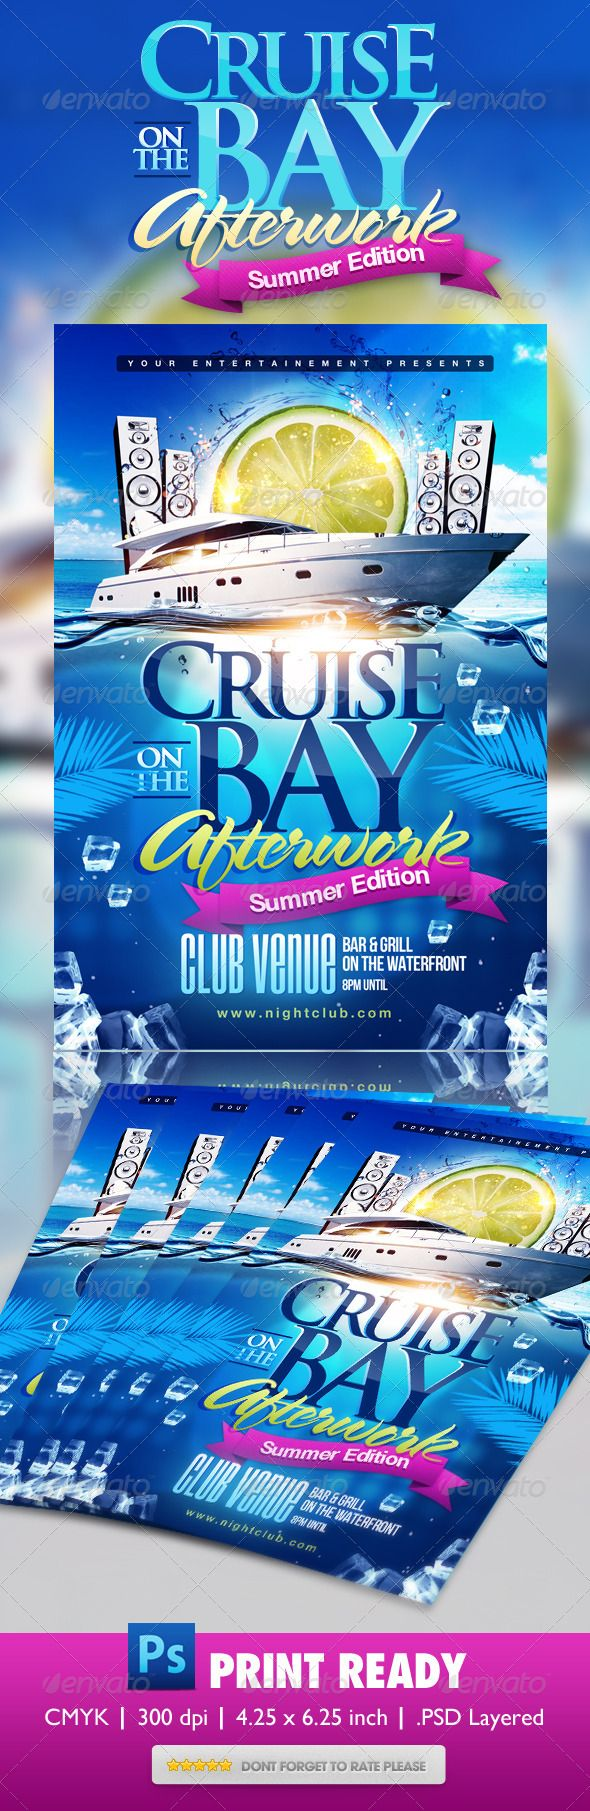 Summer Boat Cruise Party Flyer Projects To Try Pinterest Party